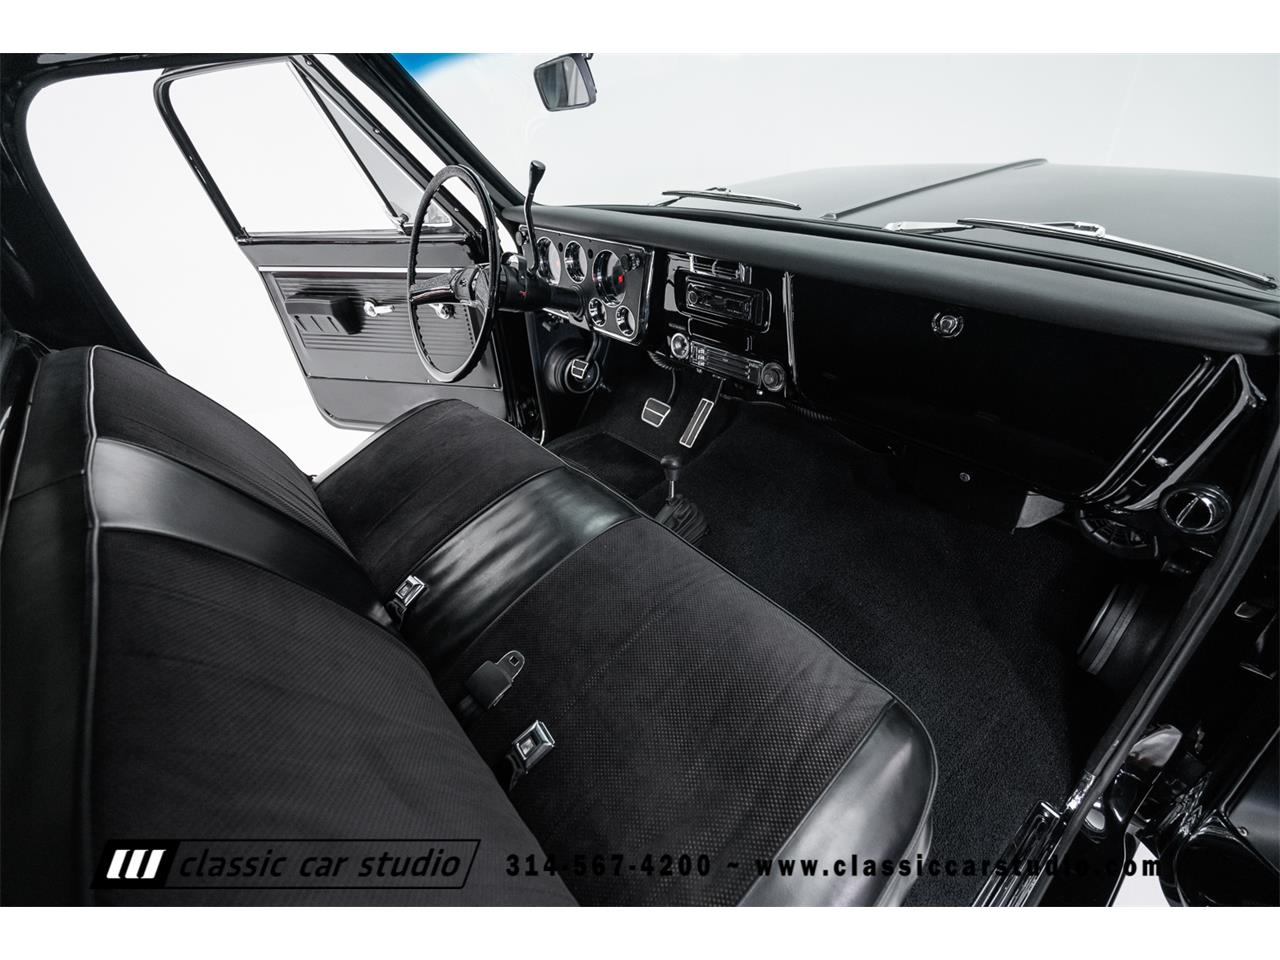 Large Picture of 1971 K-10 located in Missouri - $59,900.00 Offered by Classic Car Studio - OLTK